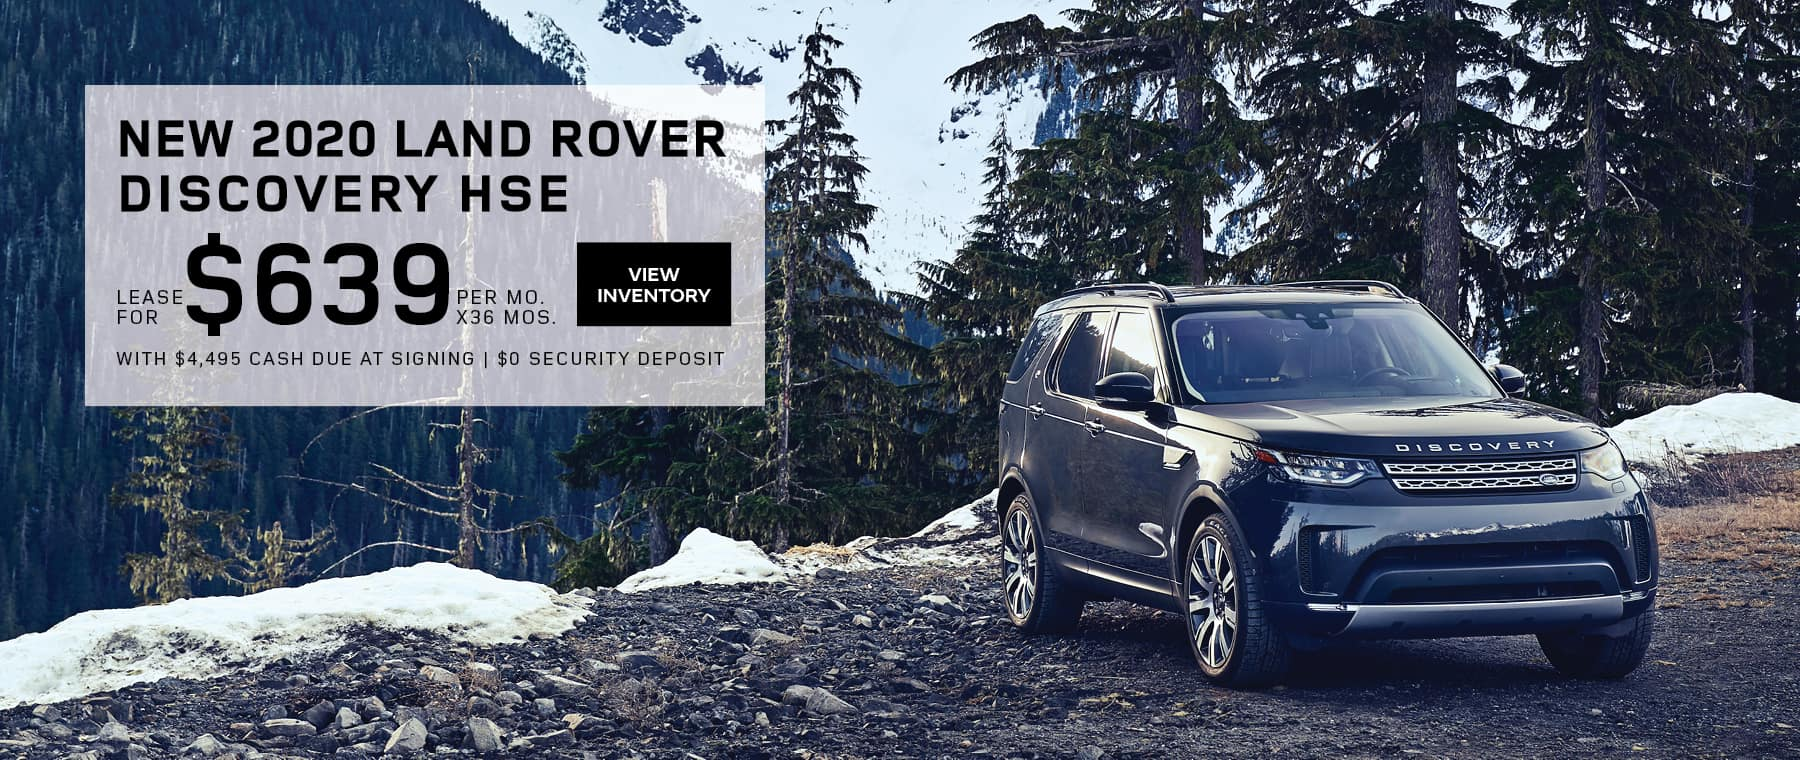 Land Rover Hinsdale Discovery HSE